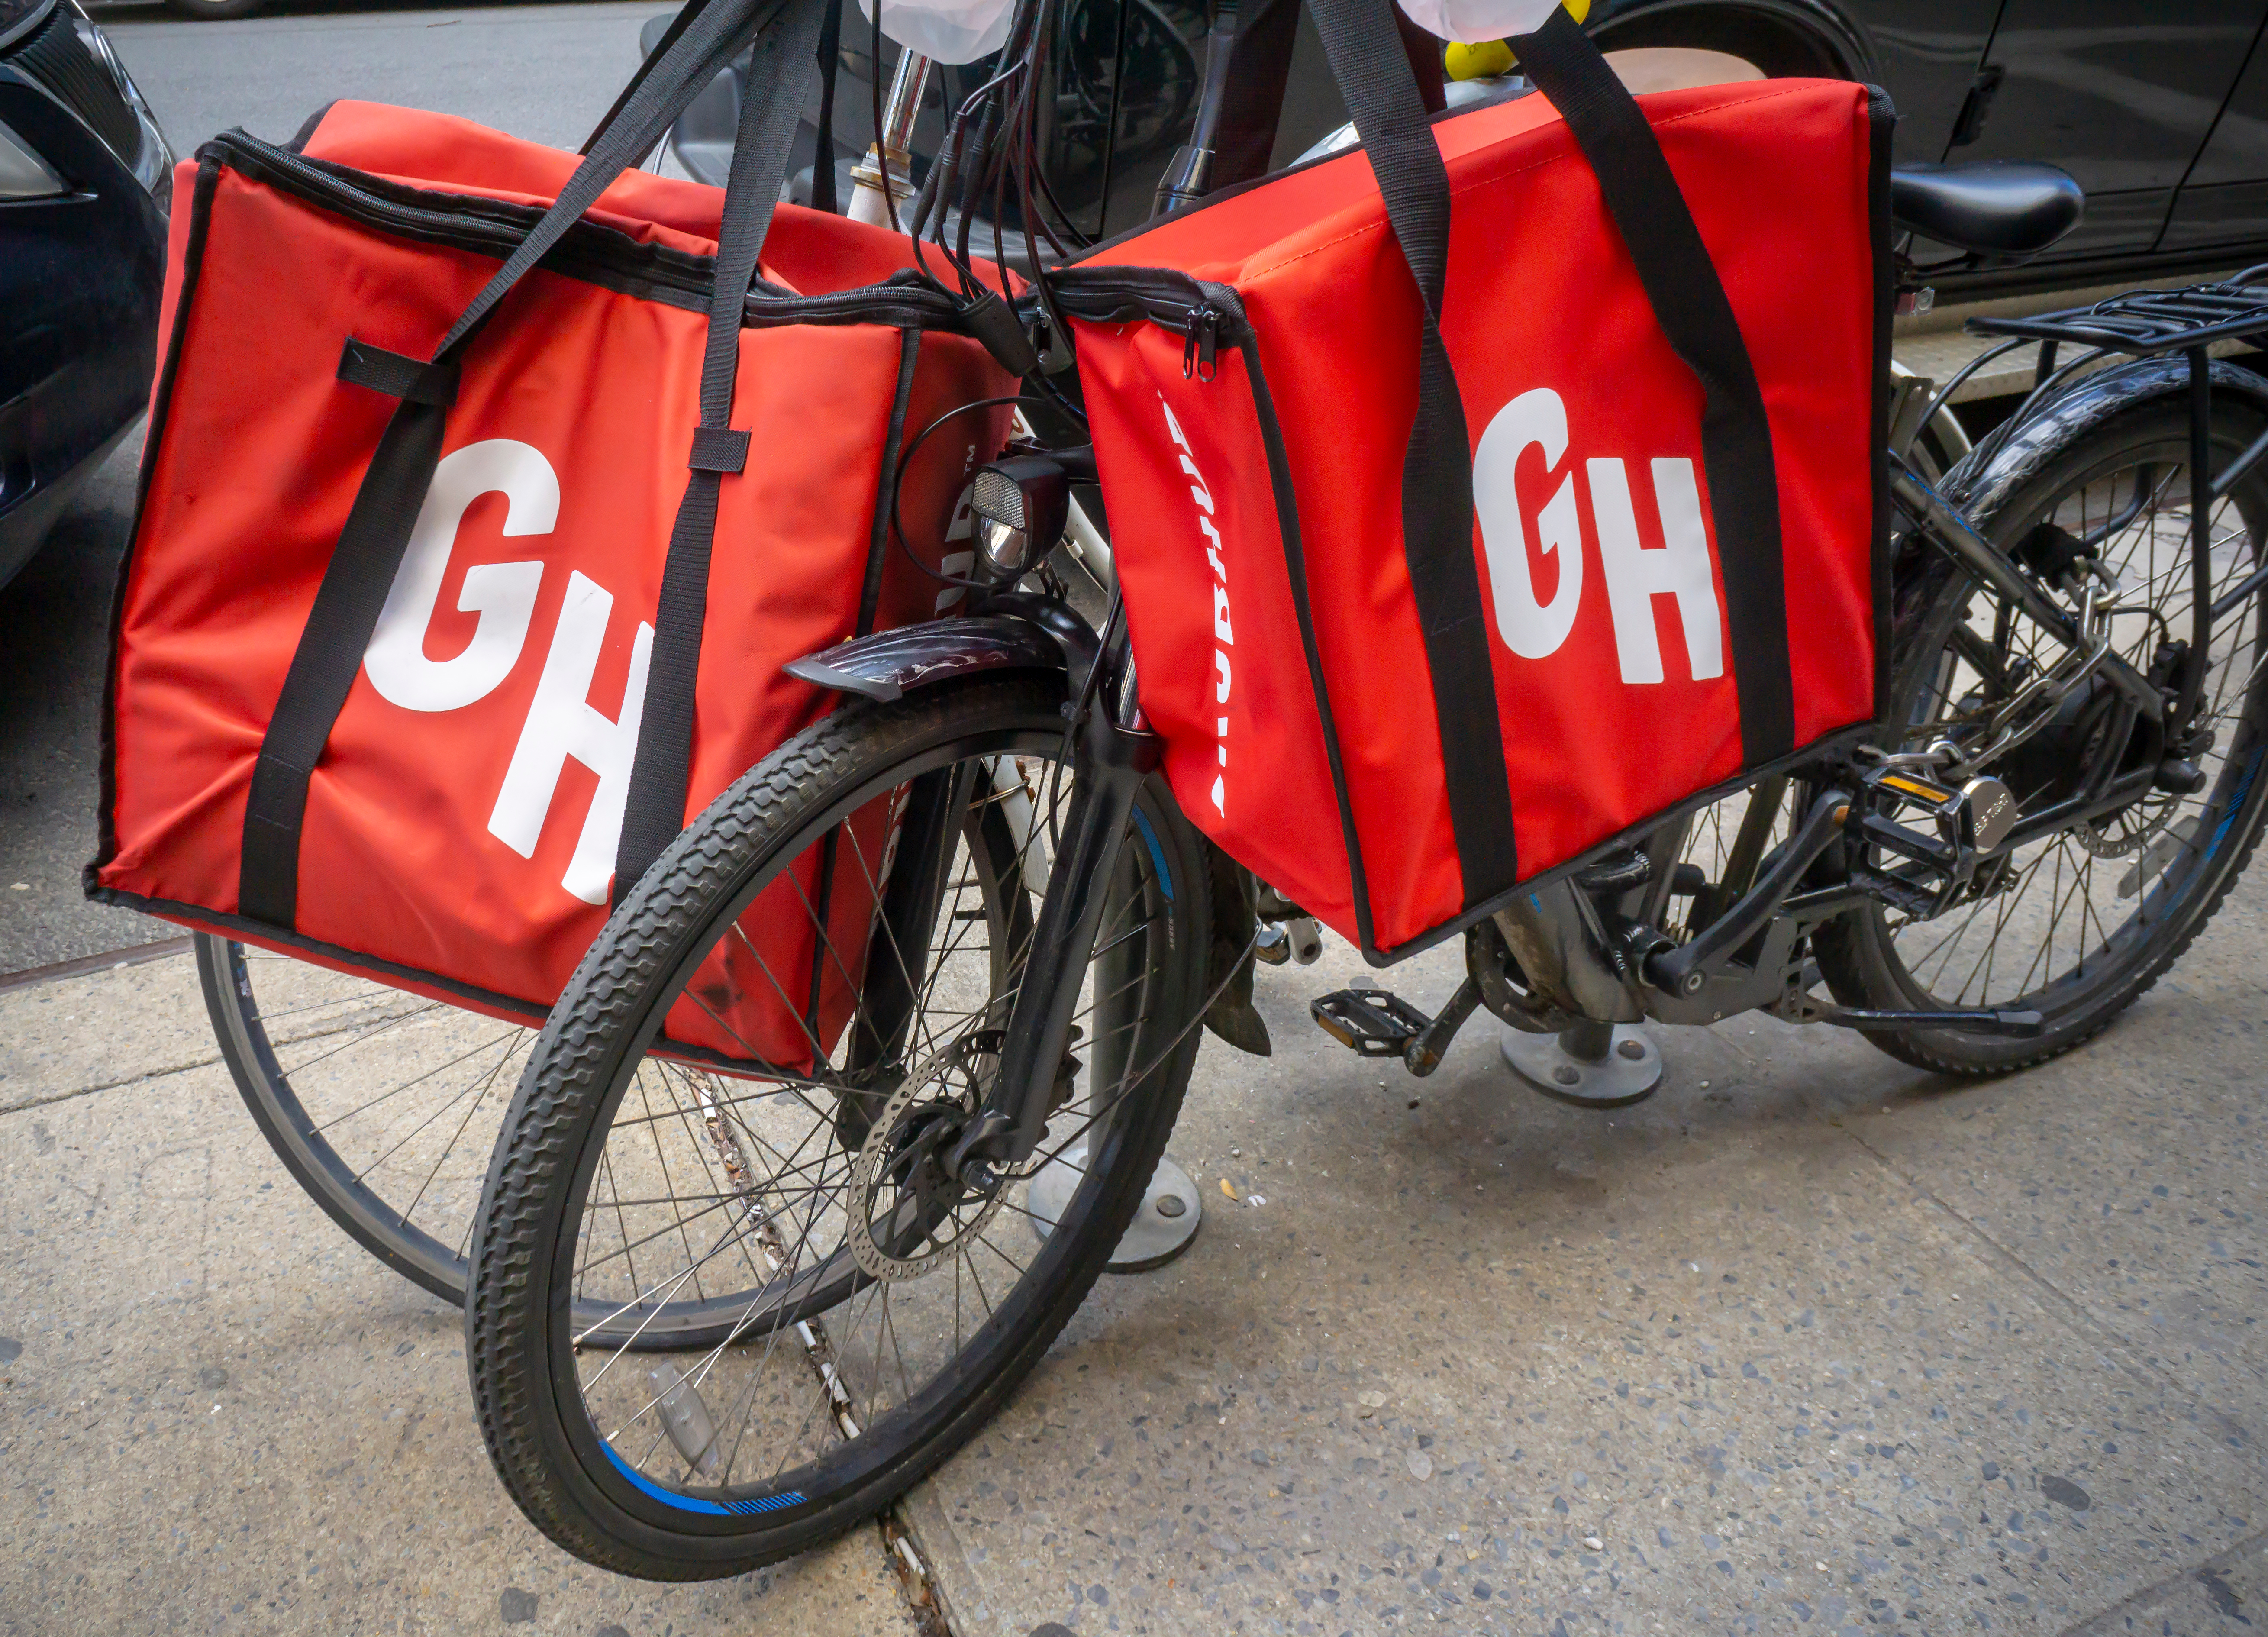 A stock photograph of a bicycle holding two red Grubhub food delivery insulated bags